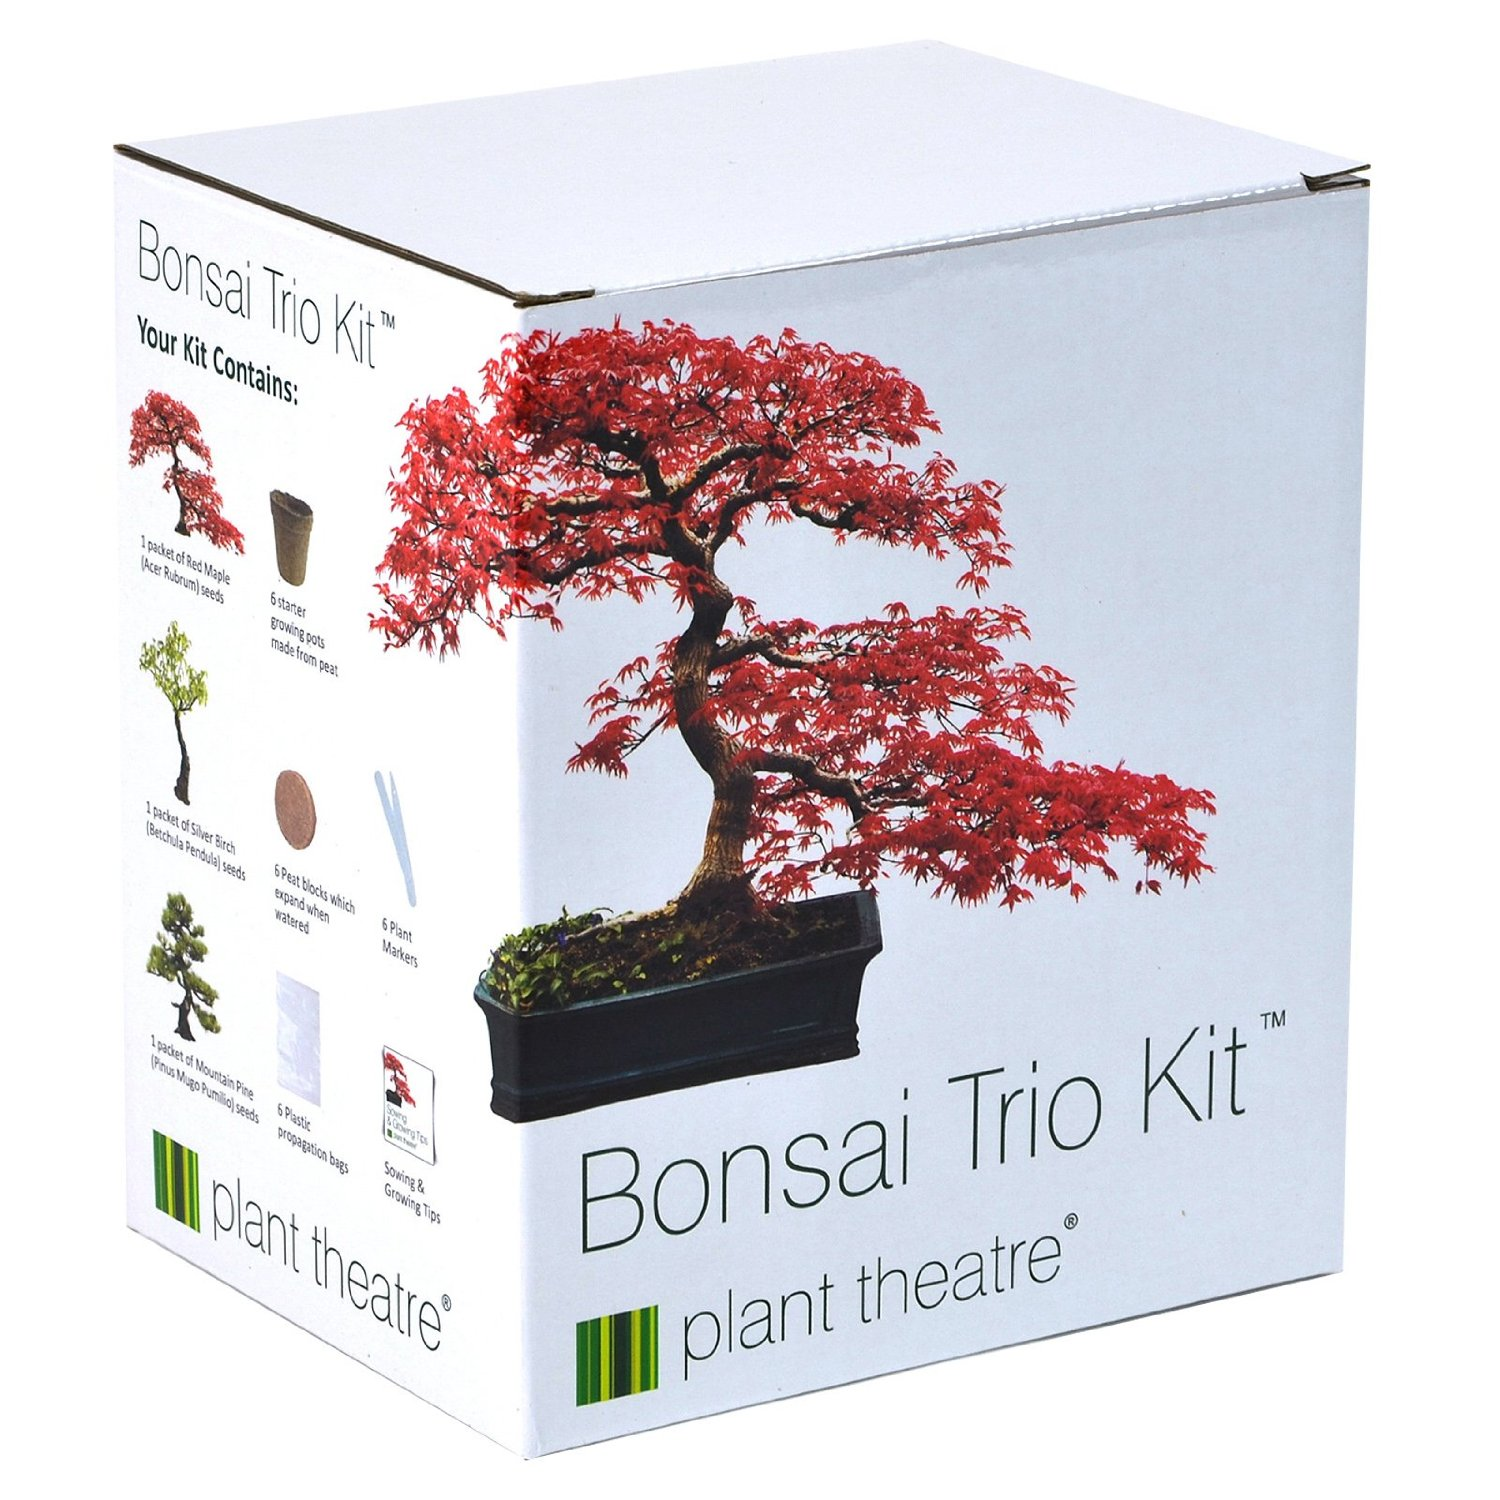 Bonsai Tree 26 Excellent Bonsai Seed Kit Images